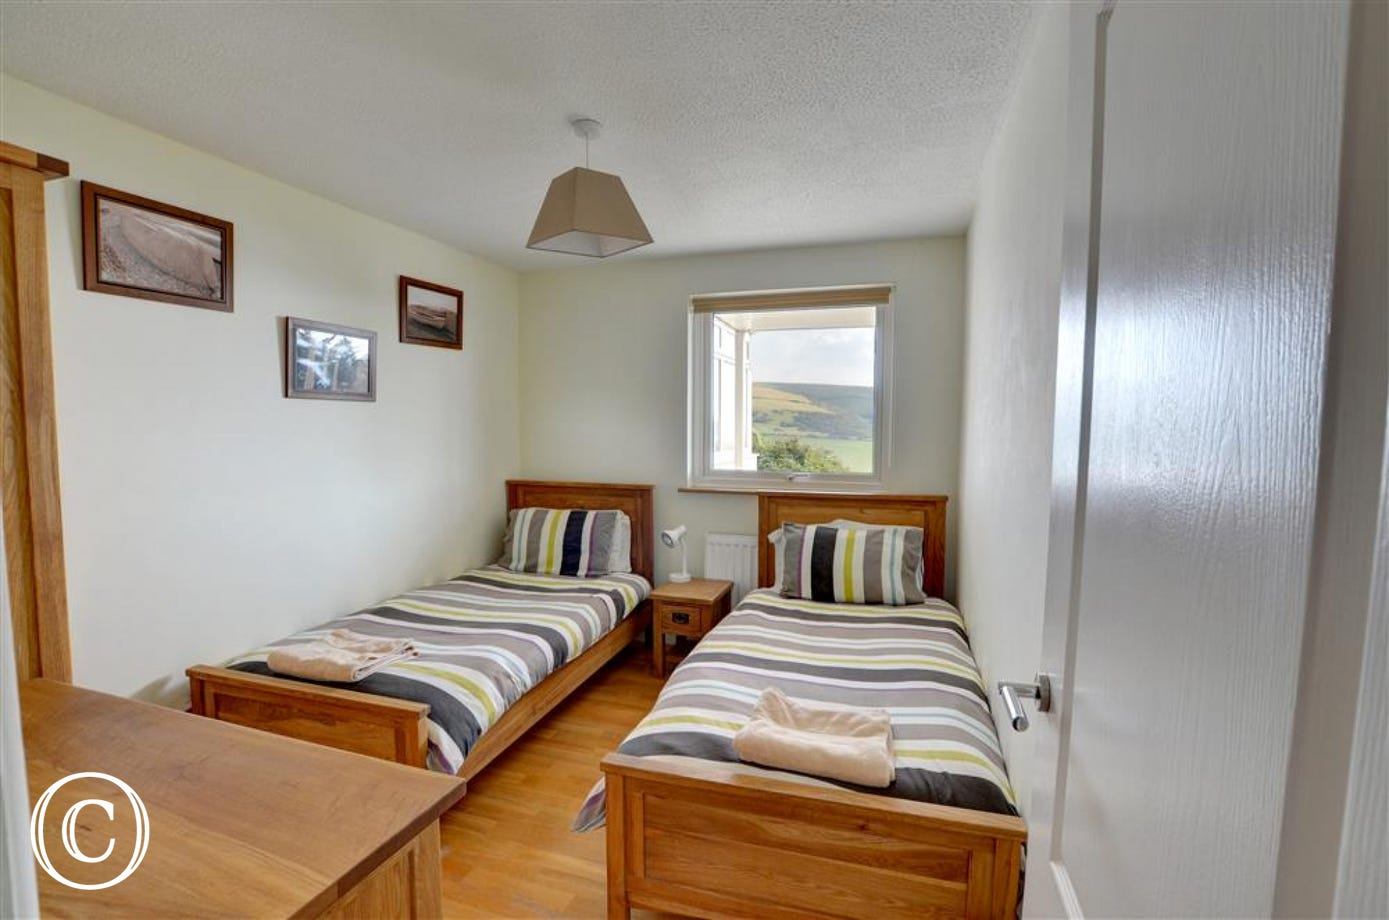 One of the twin bedrooms which has lovely views